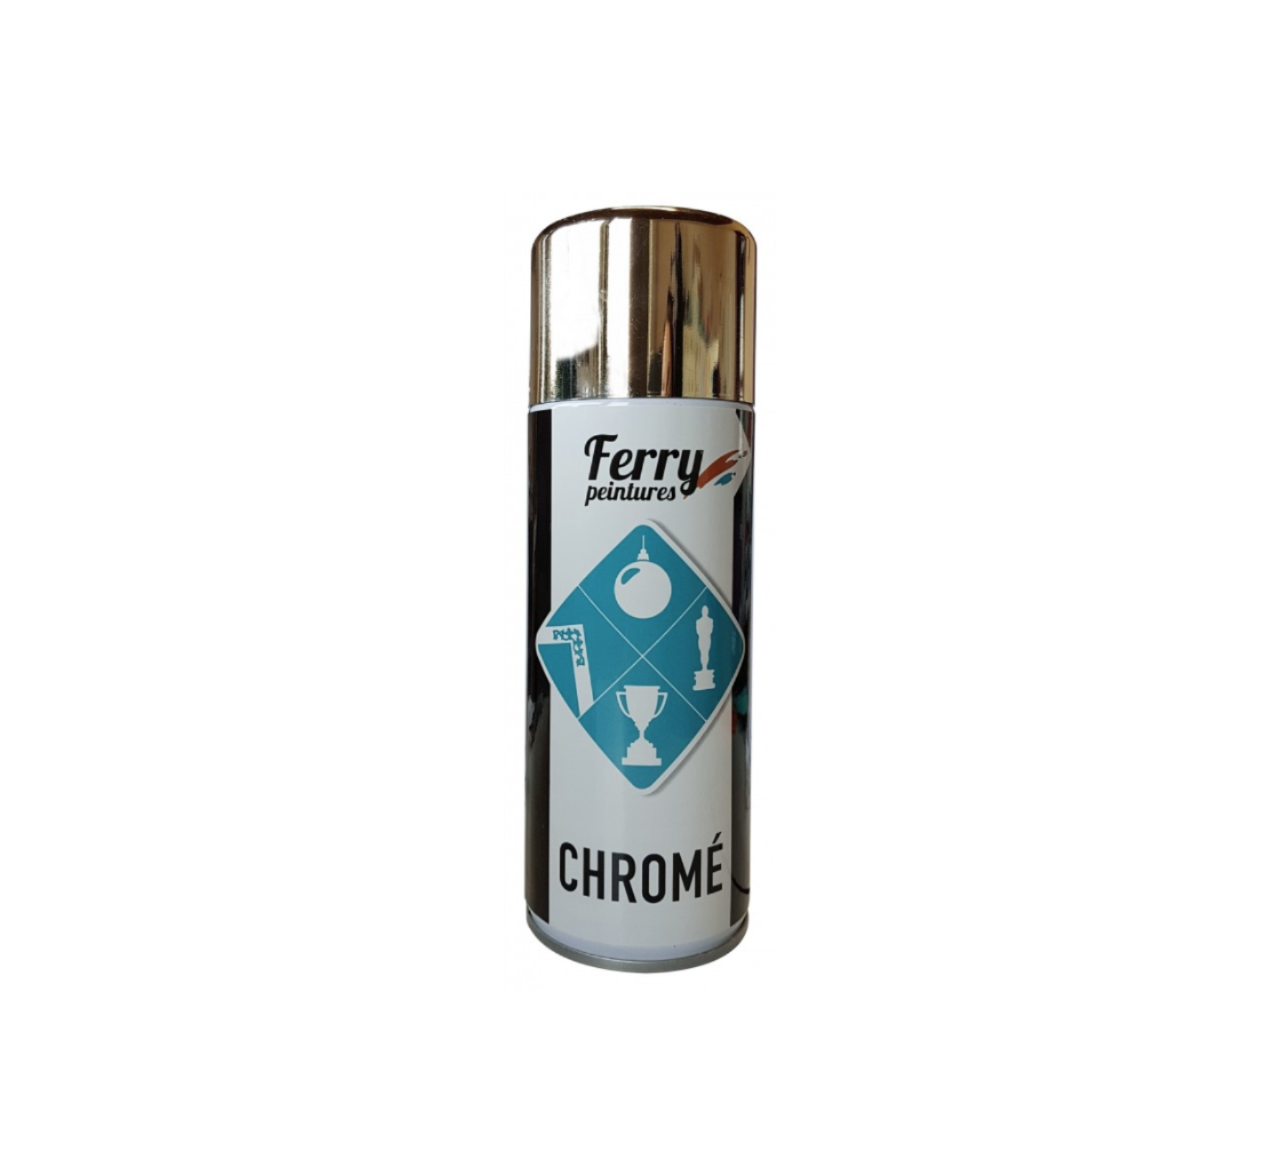 FERRY PEINTURES AEROSOL CHROME OR / GOLD 400 ML 3662173940636 AEROSOL SPRAY CANS  PAINT COMASOUND KARTEL CSK ONLINE